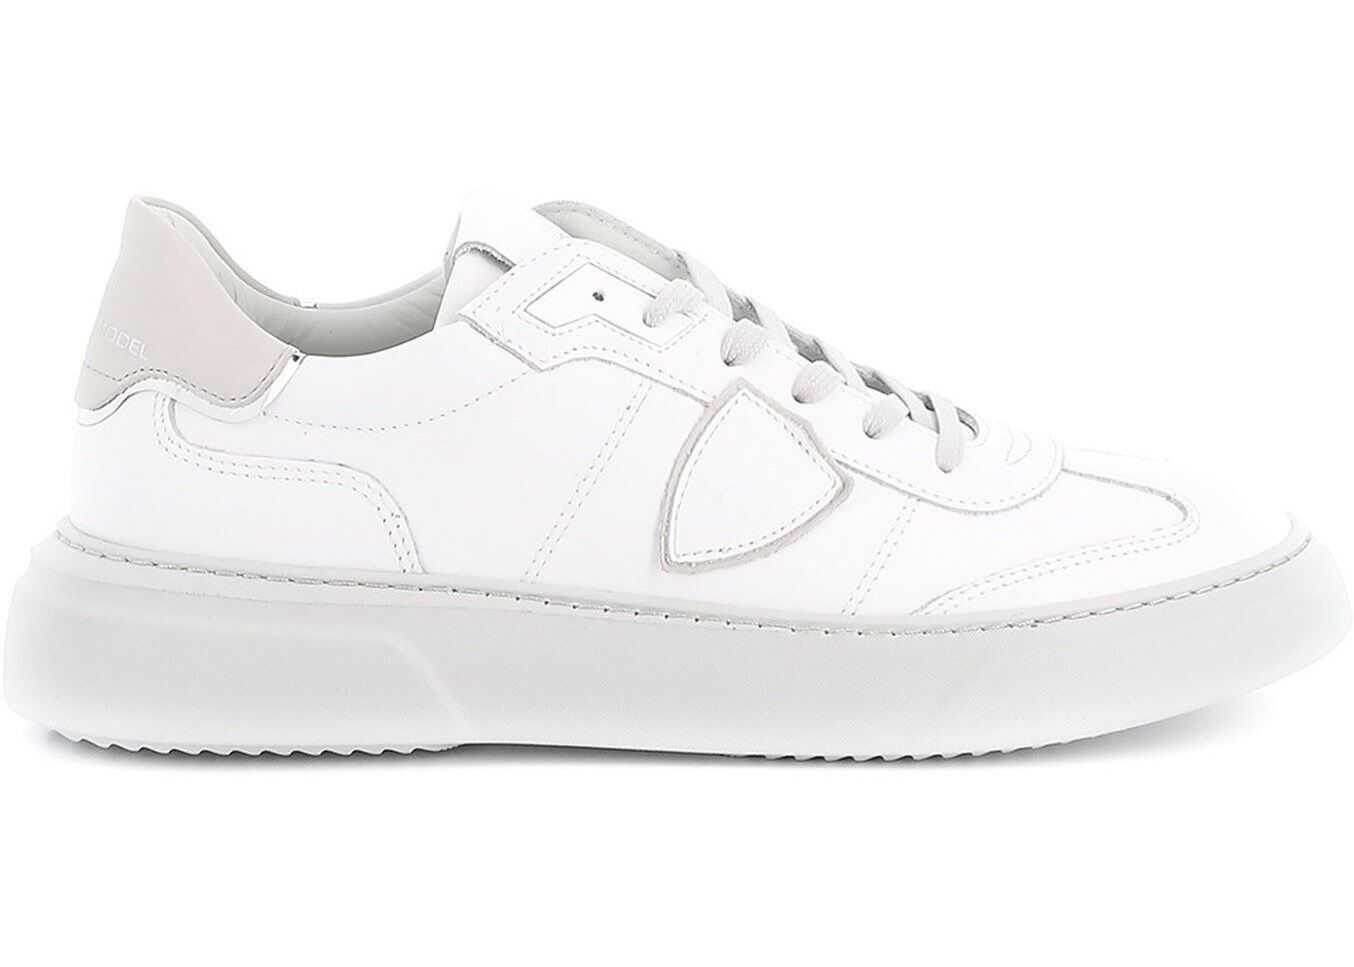 Philippe Model Temple S Sneakers White